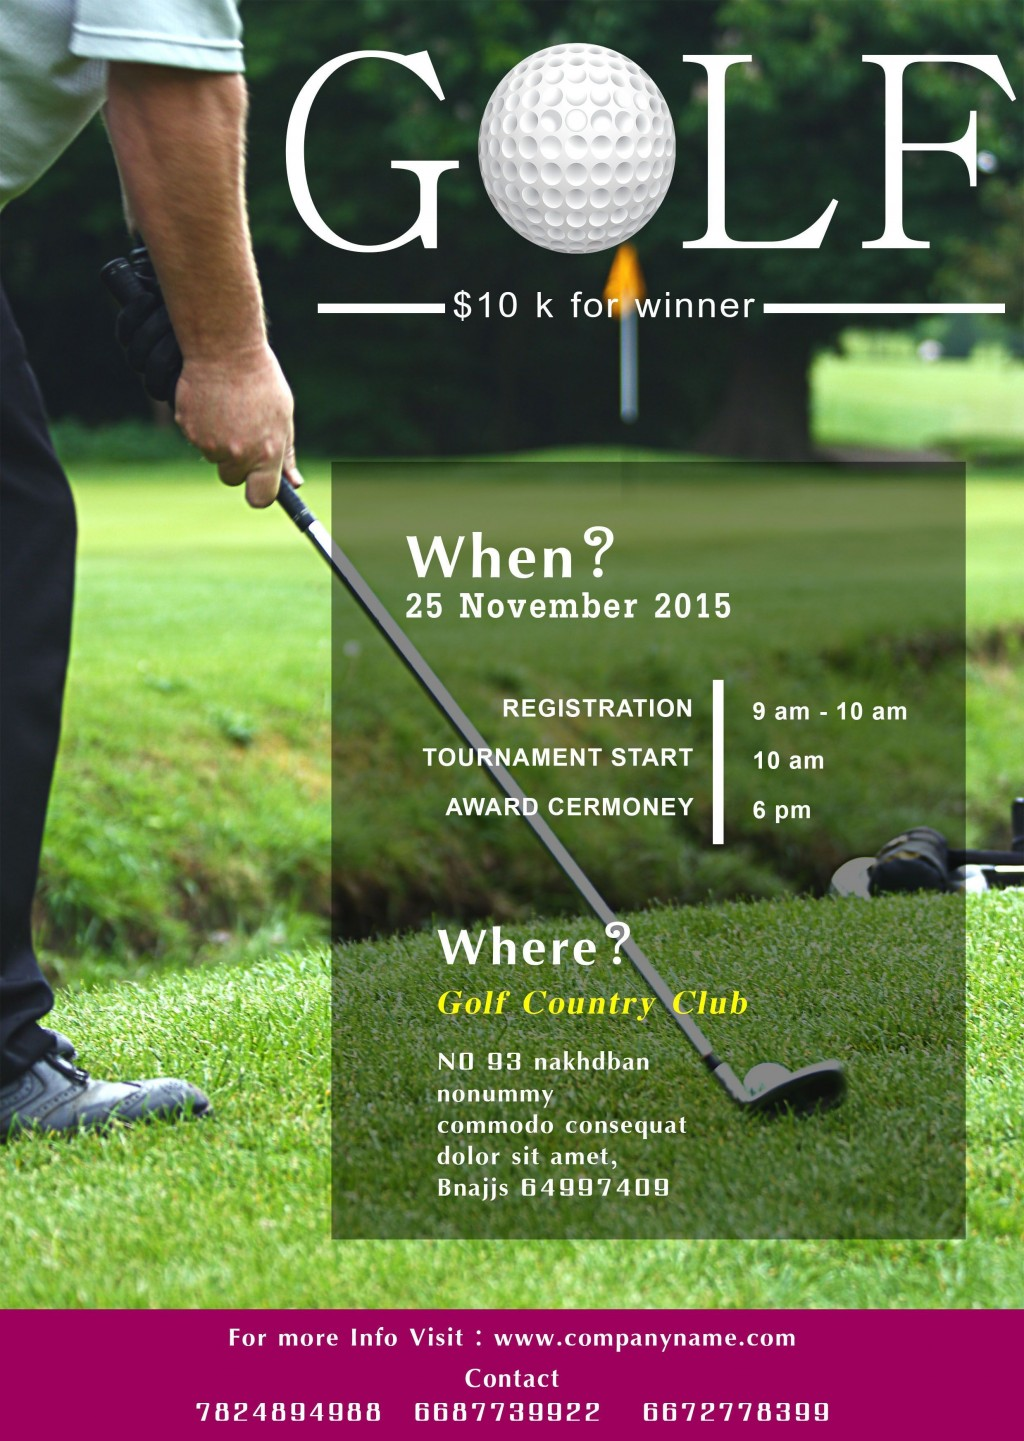 006 Stirring Golf Tournament Flyer Template Photo  Word Free PdfLarge